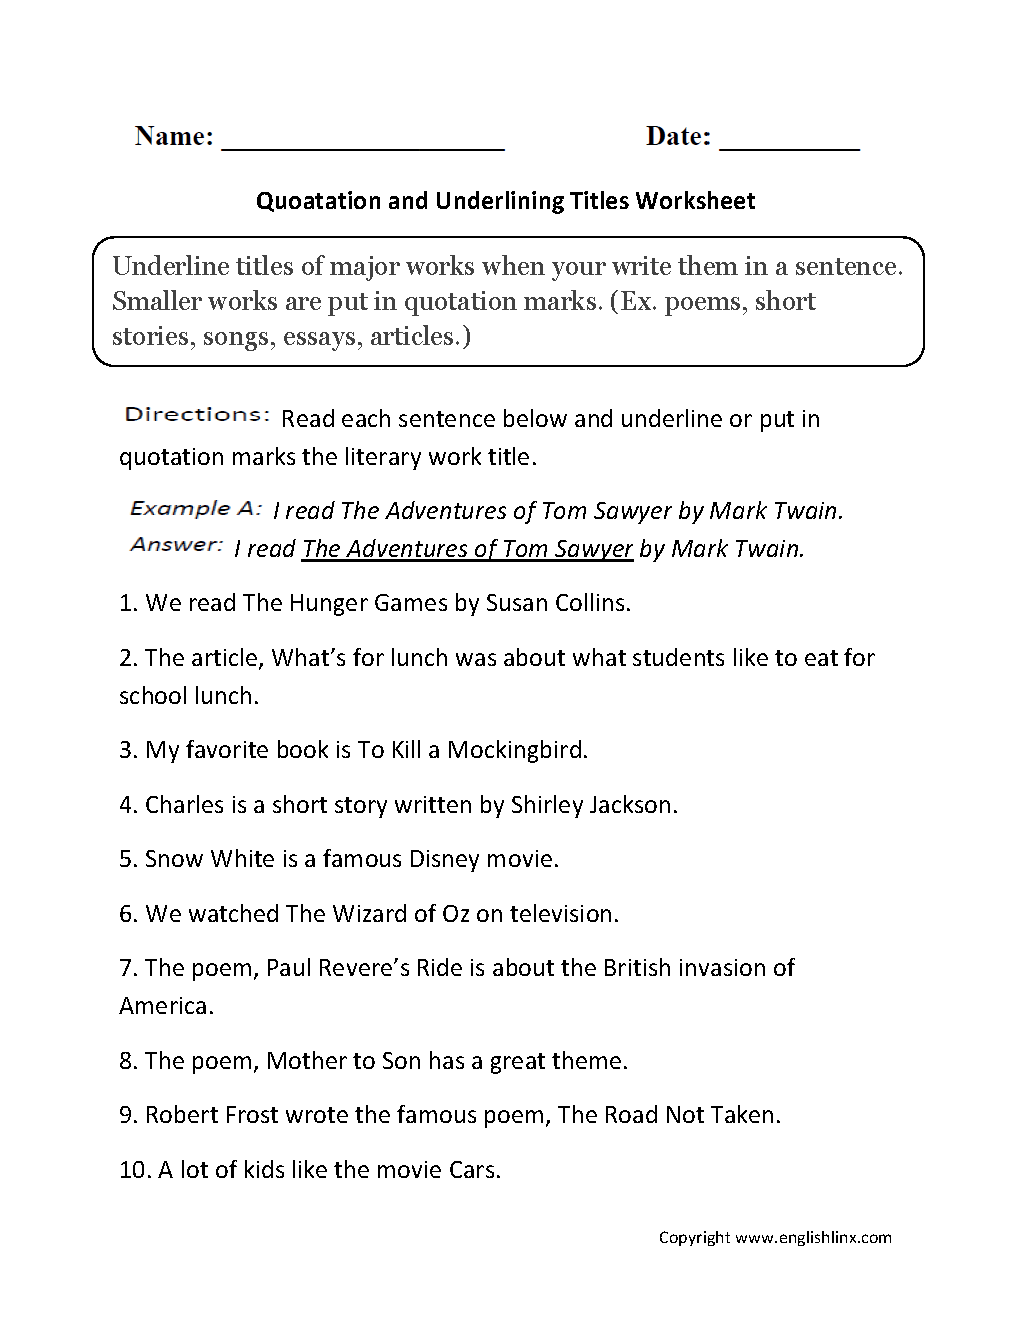 Worksheets Quotation Marks Worksheet grammar mechanics worksheets italics and underlining quotation titles worksheets